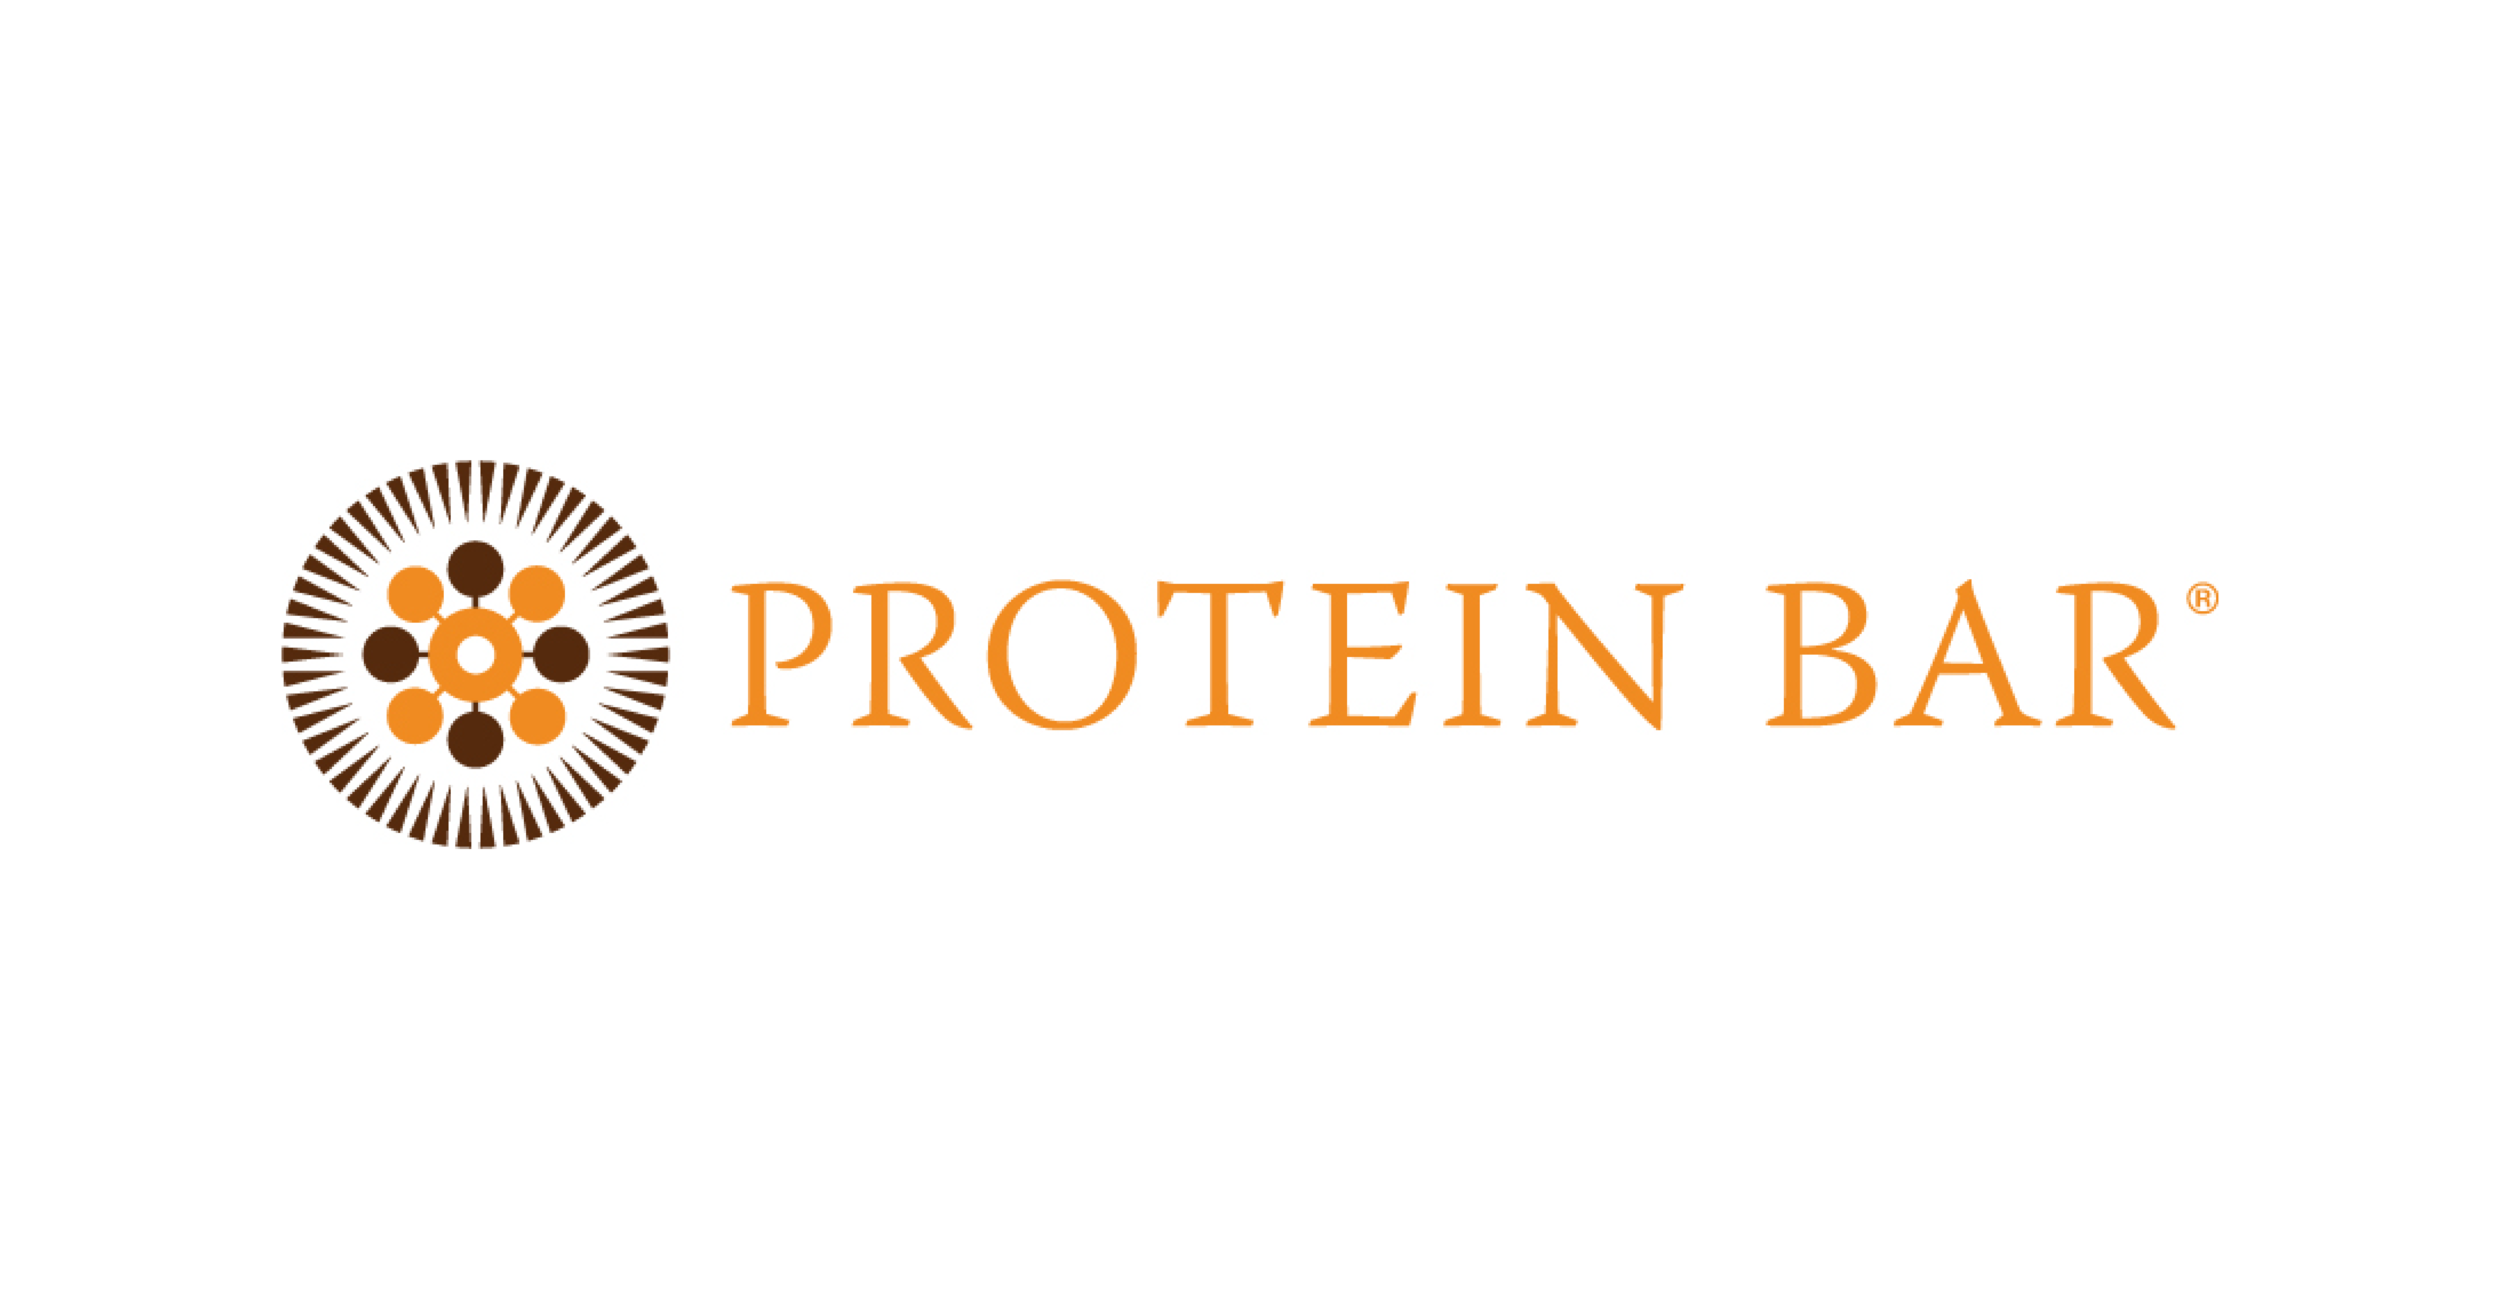 Plant-based tips for eating at Protein Bar. Vegan menu options for Protein Bar explained.